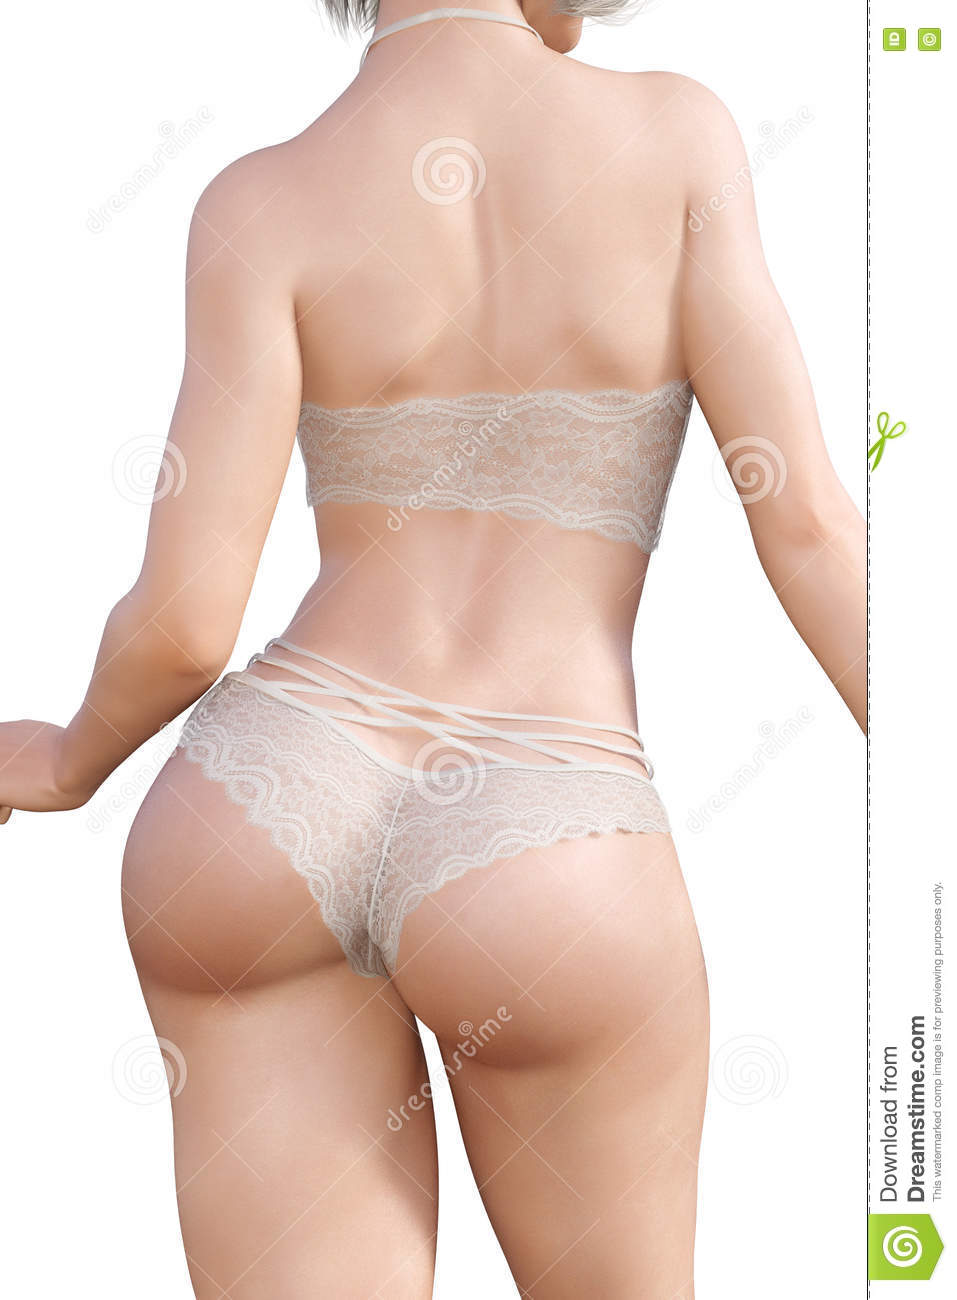 0d6611c515bcf Girl in lacy underwear. stock illustration. Illustration of adult ...